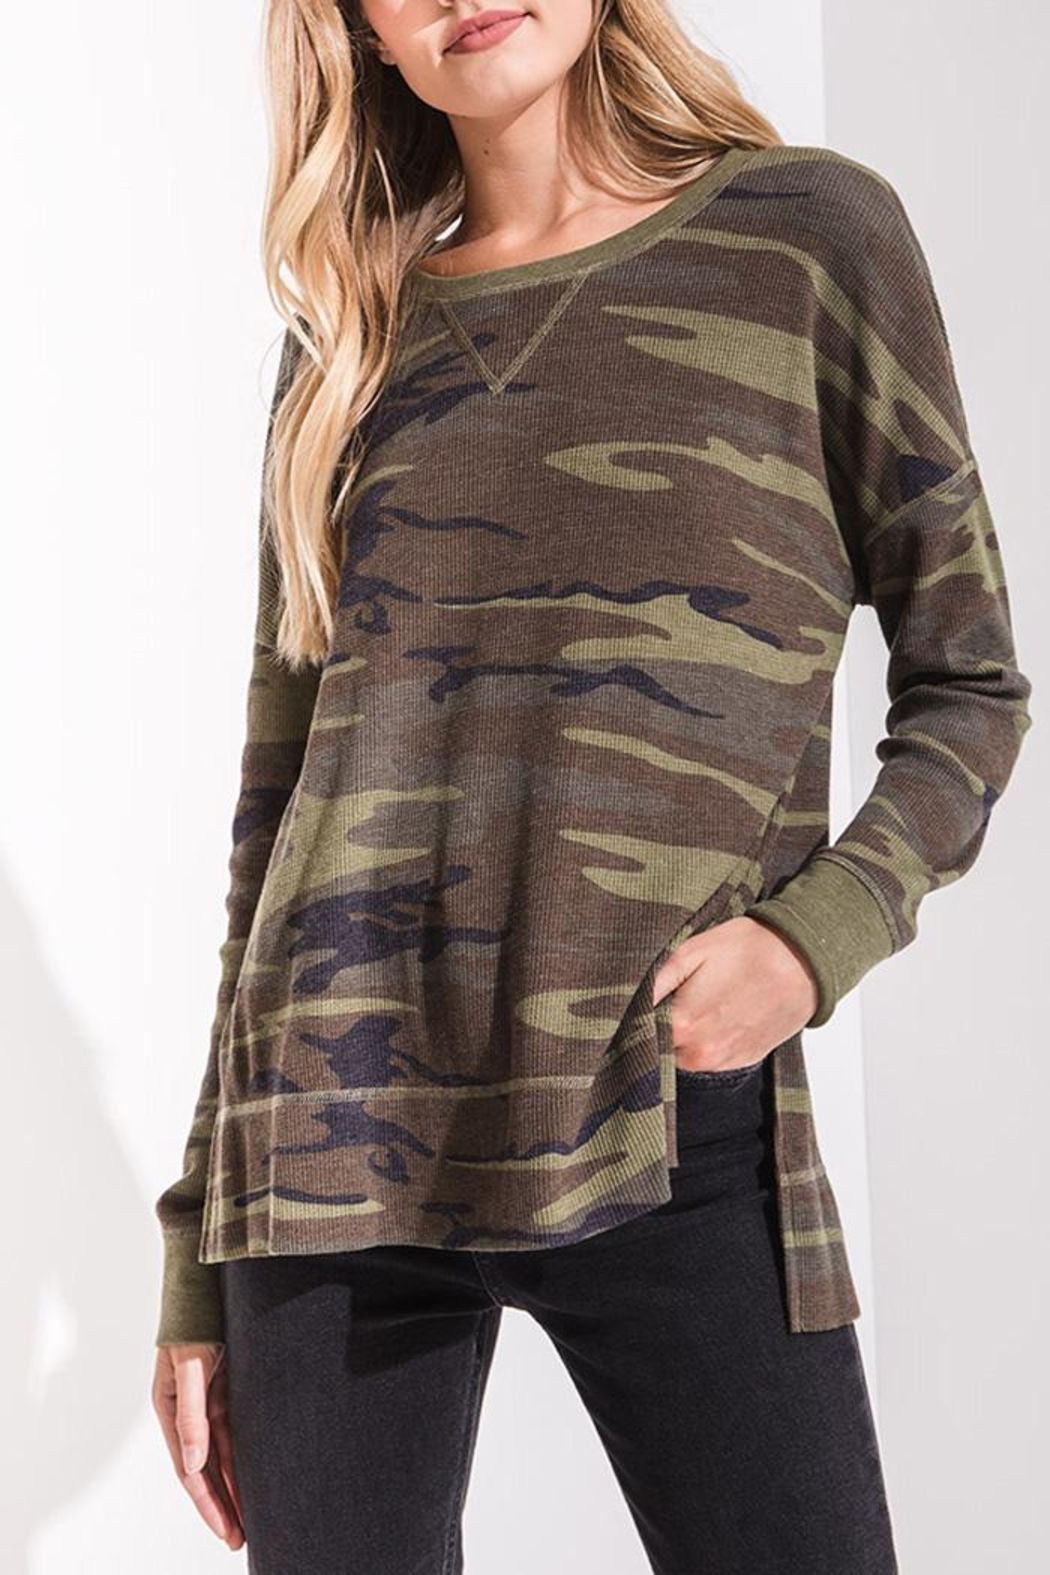 z supply Camo Thermal Top - Main Image